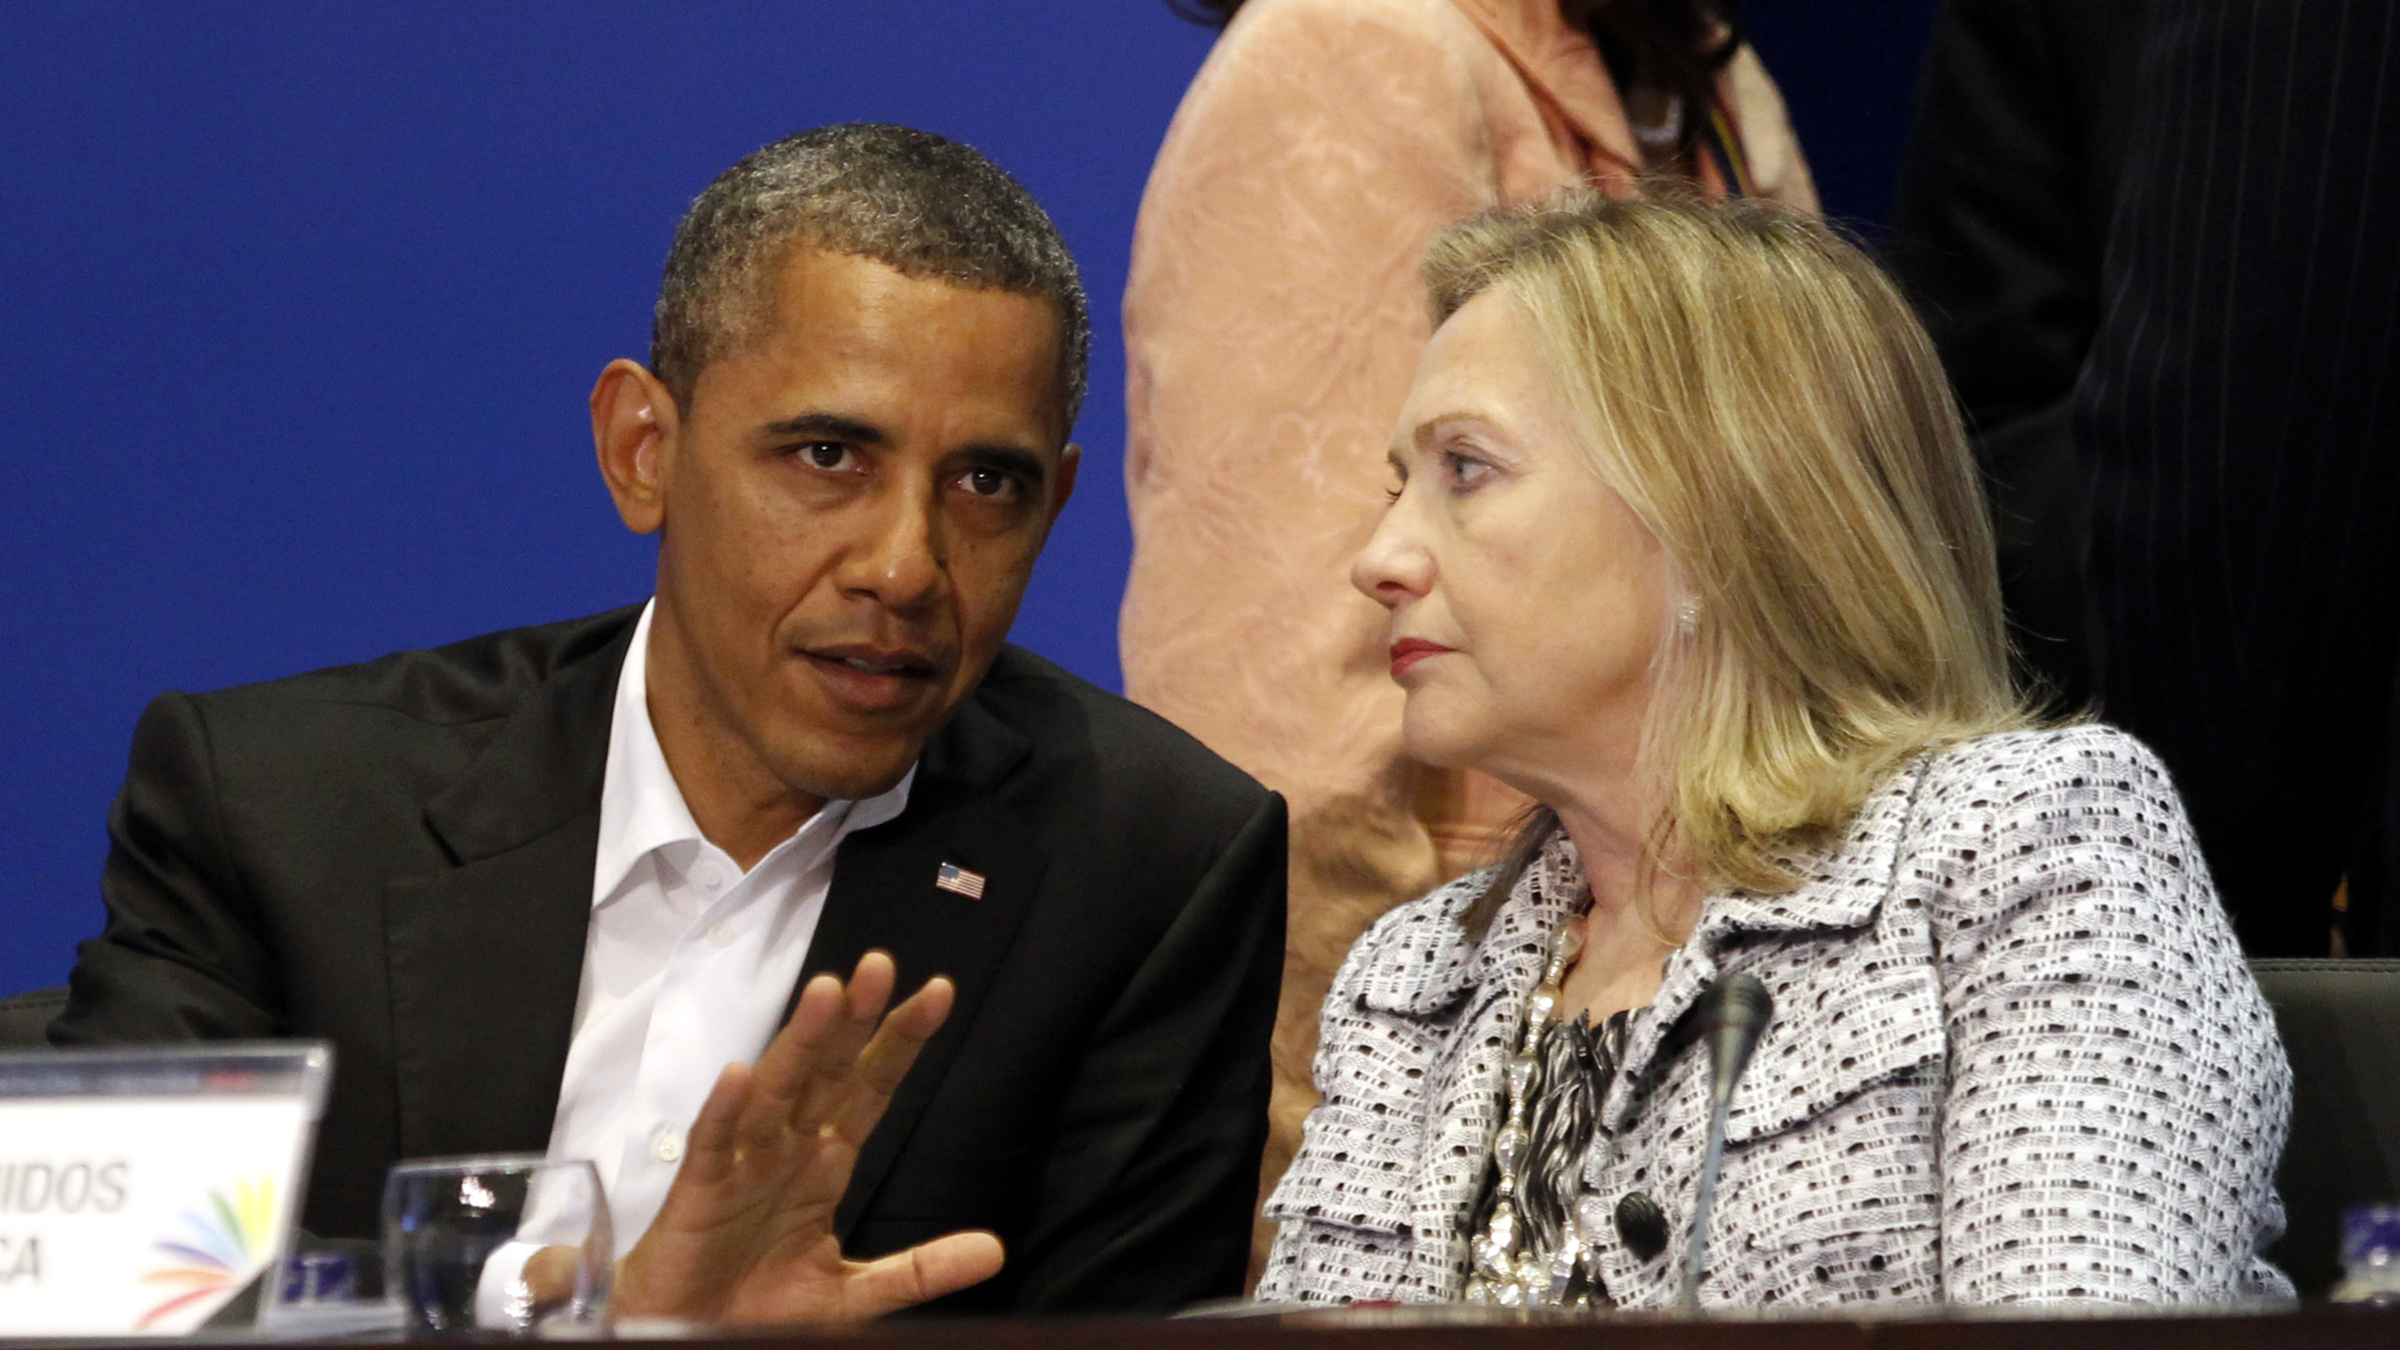 U.S. President Barack Obama and Secretary of State Hillary Clinton talk during the plenary session of the Summit of the Americas in Cartagena April 14, 2012. Obama tried on Saturday to convince skeptical Latin Americans that Washington has not turned its back on them, but ruled out a drug policy U-turn that some in the region want.